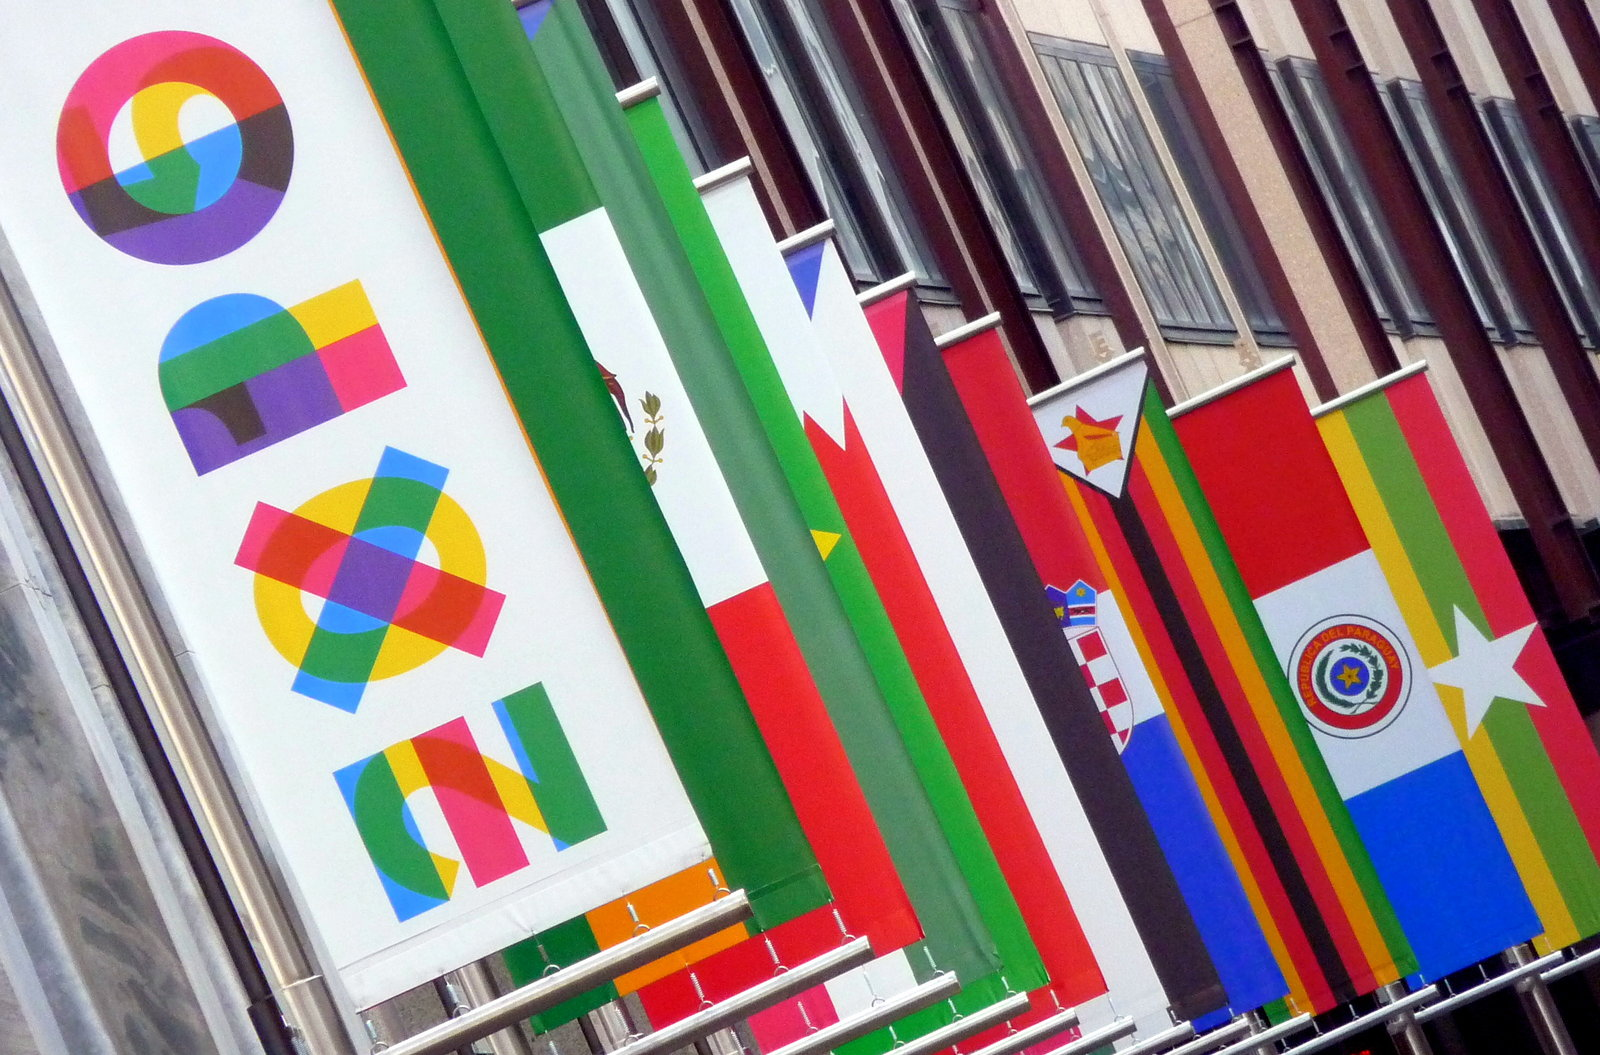 expo 2015 flags milano